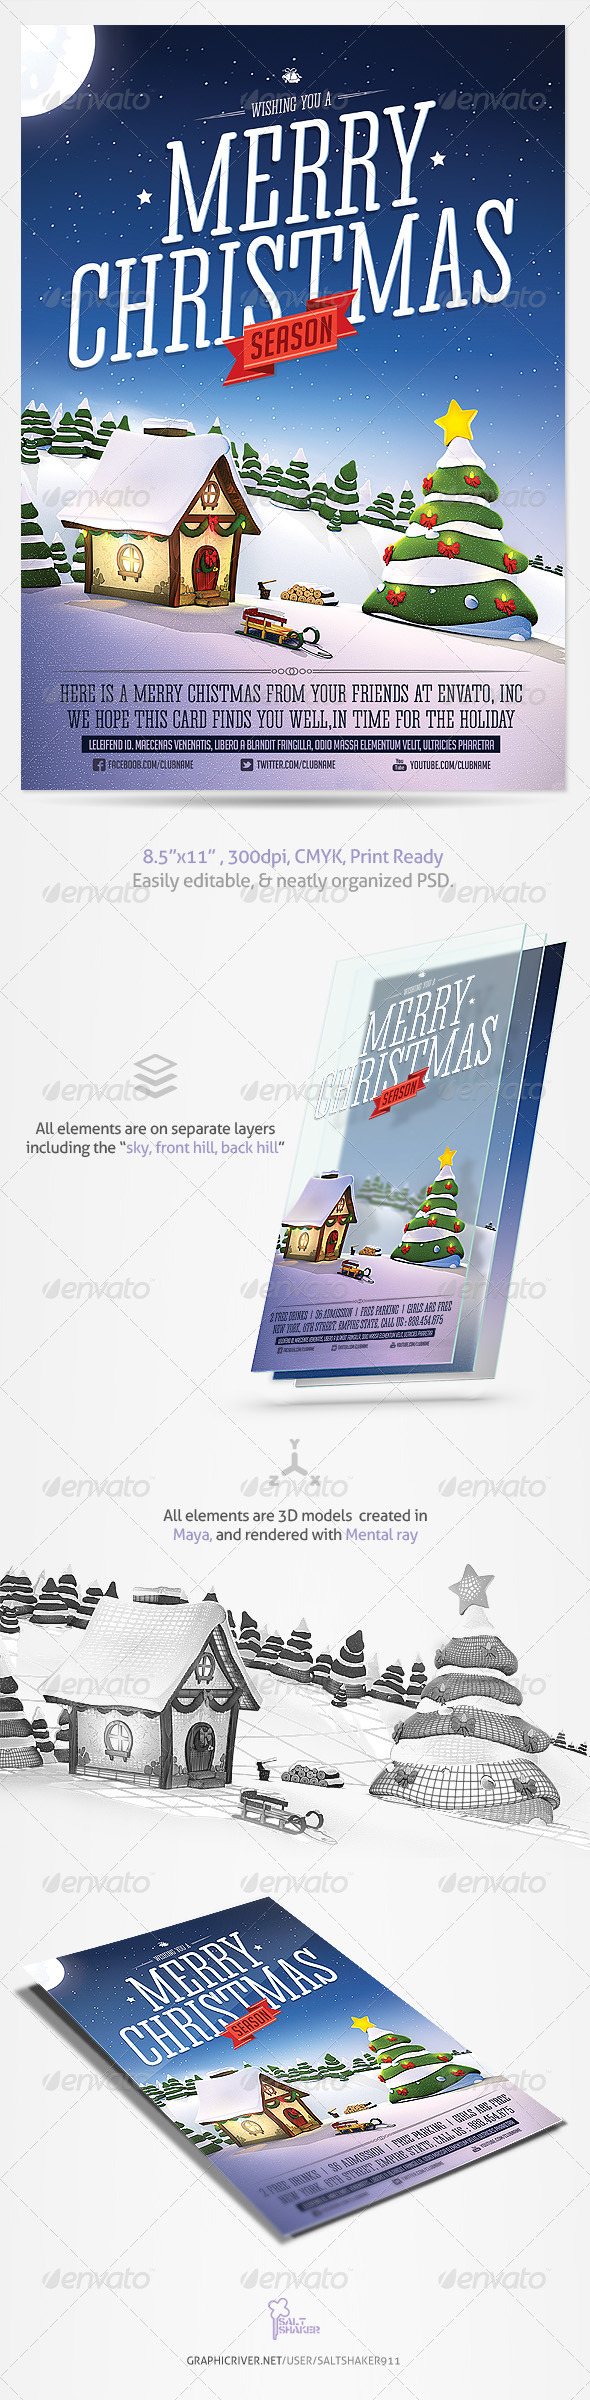 Christmas Greetings Card Template